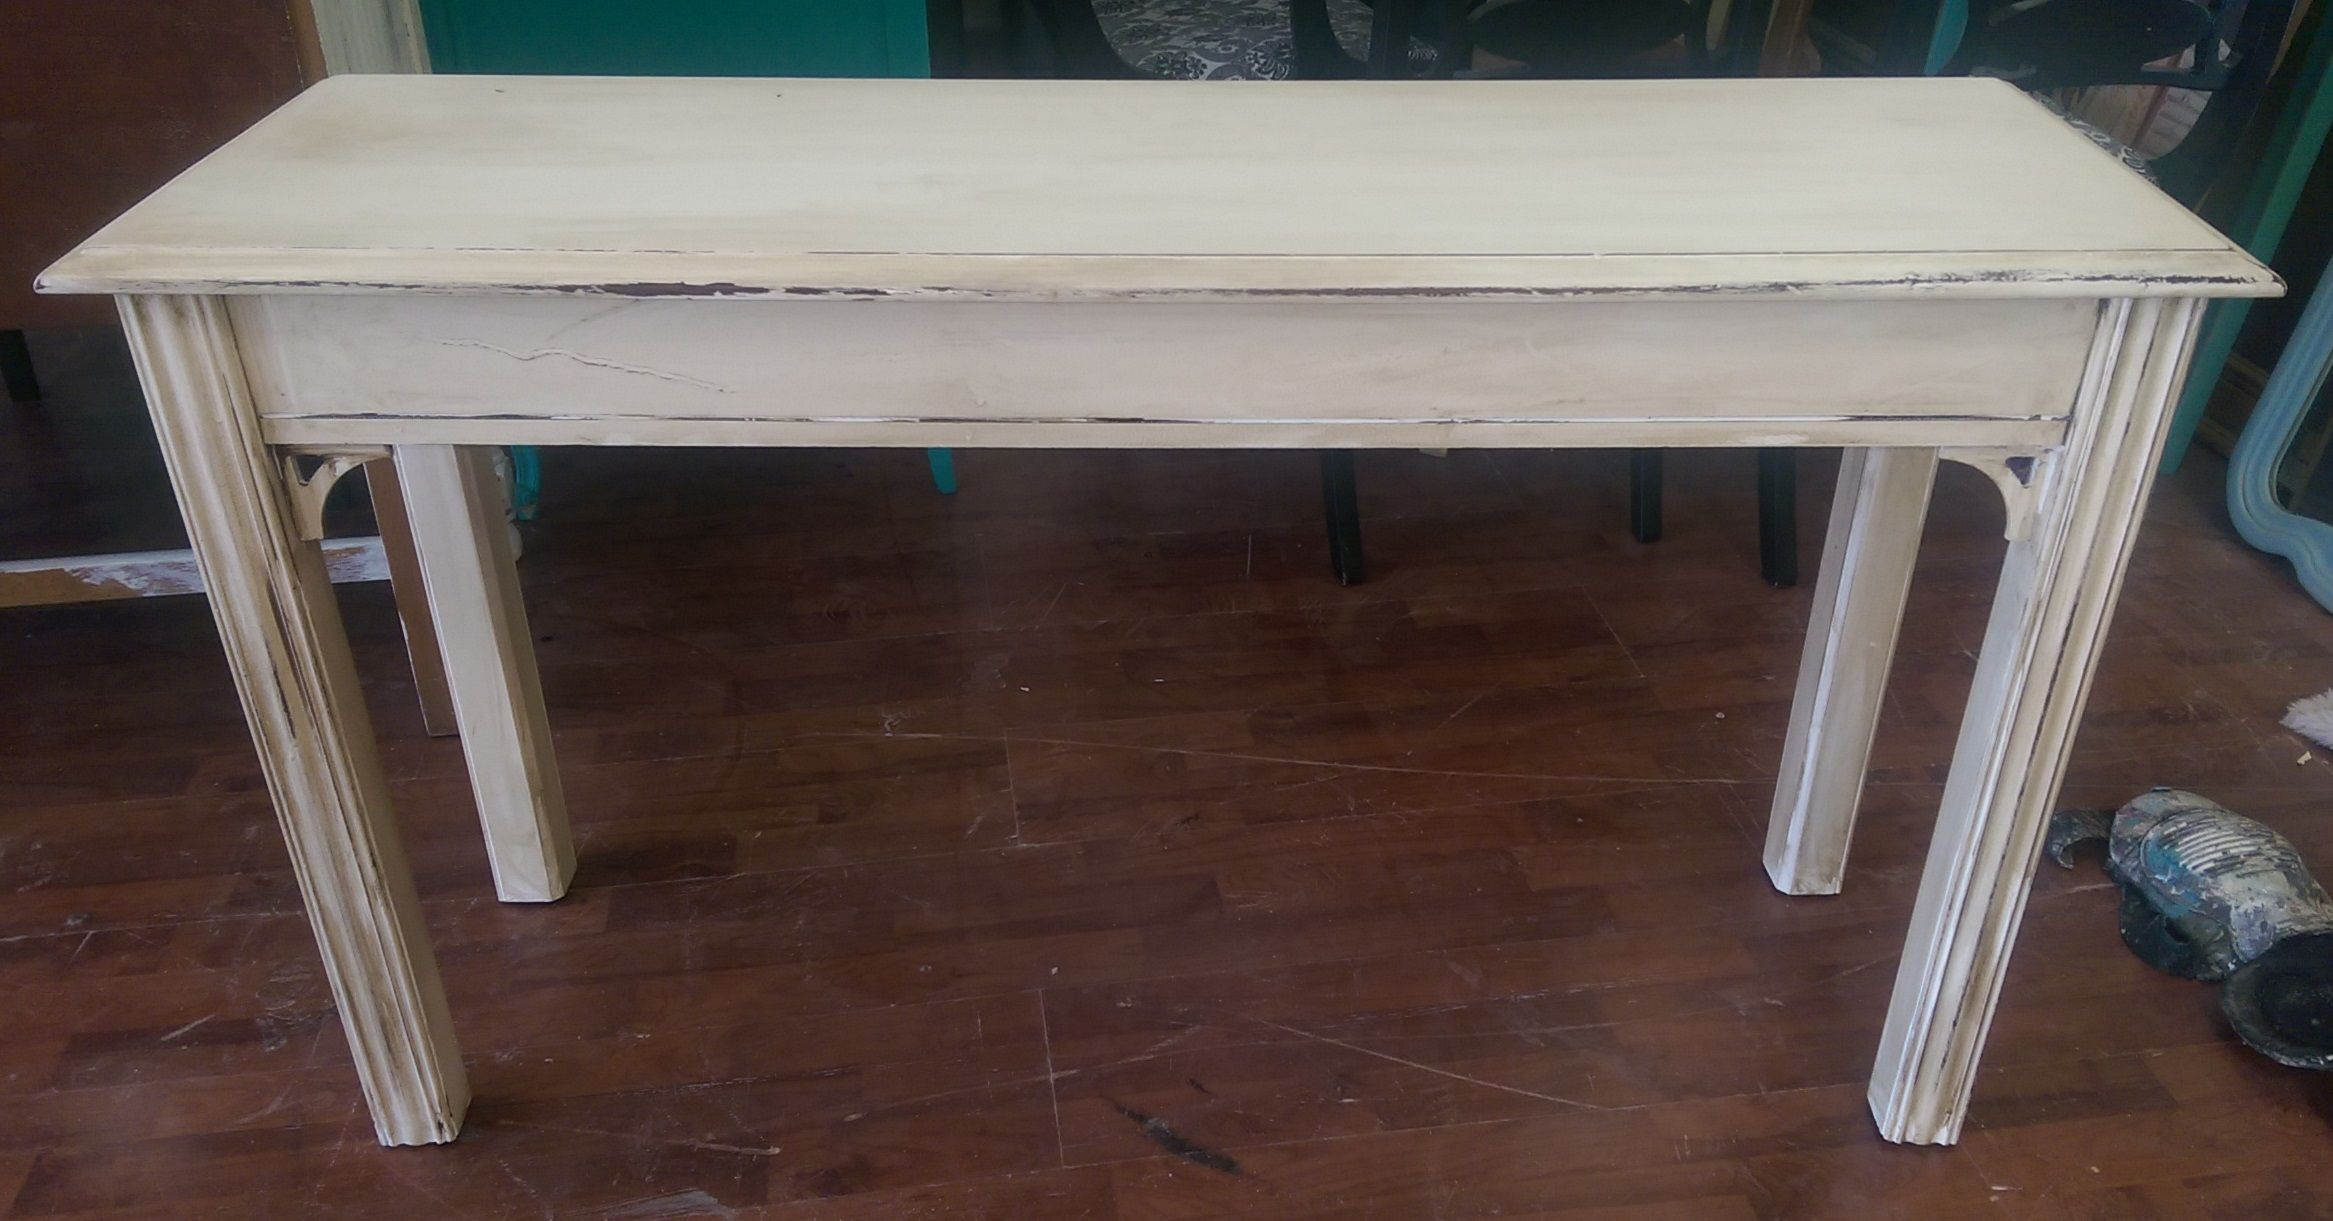 pin shabby chic tables long accent table this are great for entry sofa painted garden bench grey and white rug warwick furniture nautical kitchen lighting glass end living room